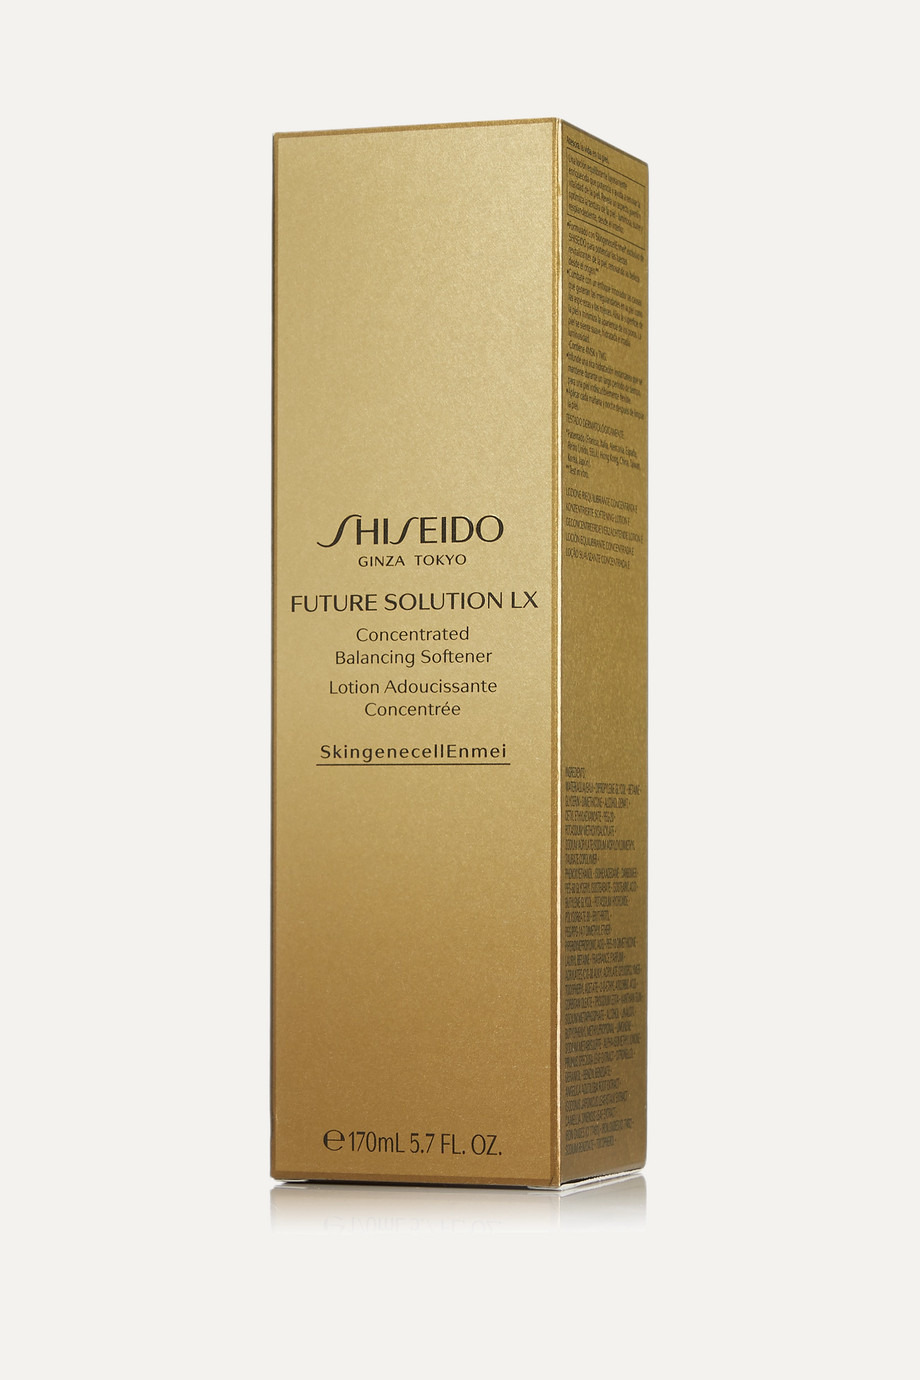 Shiseido Future Solution LX Concentrated Balancing Softener, 150 ml – Gesichtslotion